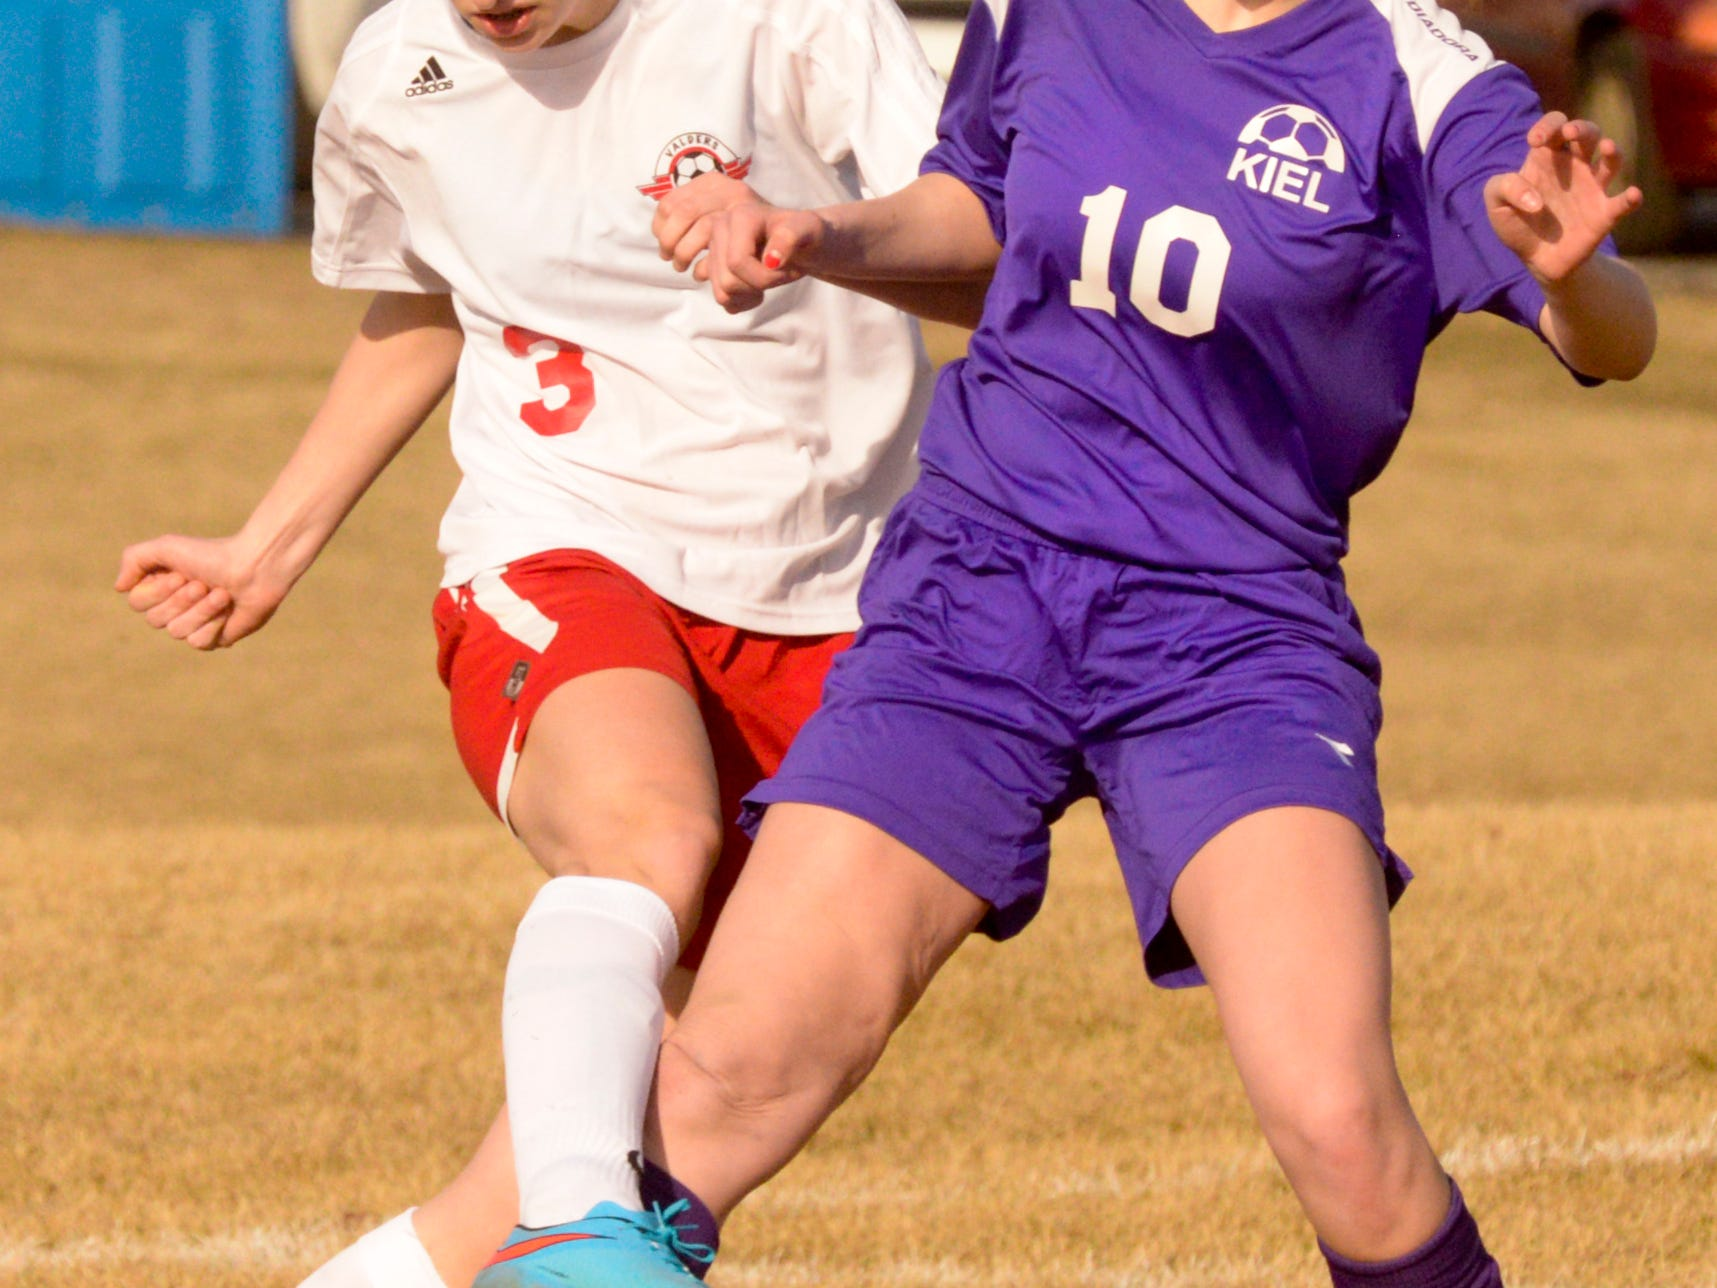 Valders Alyssa Christianson (3) fights for ball control with Kiel's Sophia Heus (10) during Tuesday's nonconference soccer match.